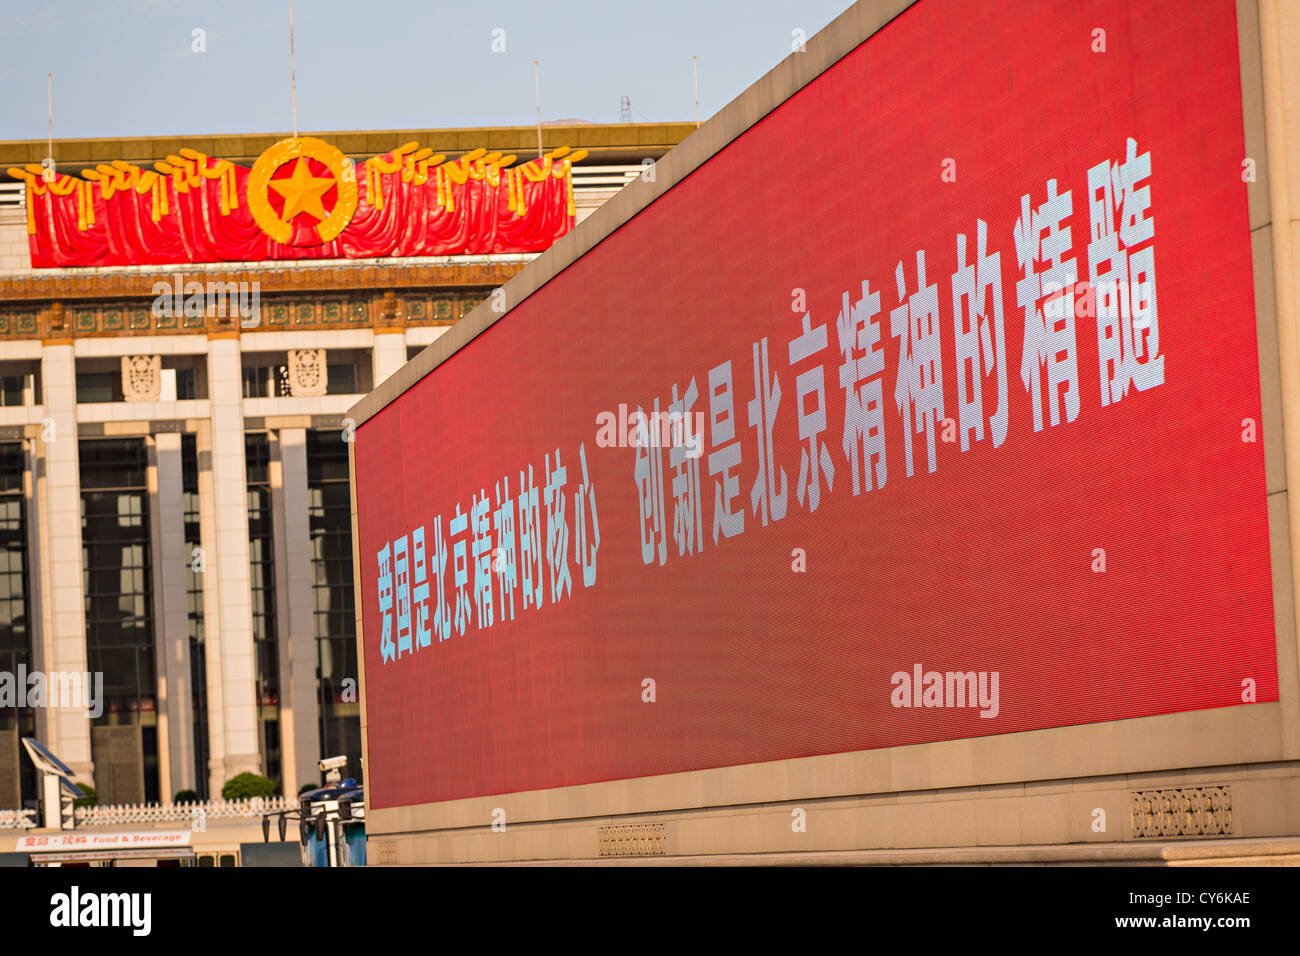 A electronic sign flashes slogans in Tian'an Men square in Beijing, China with the China National Museum in - Stock Image